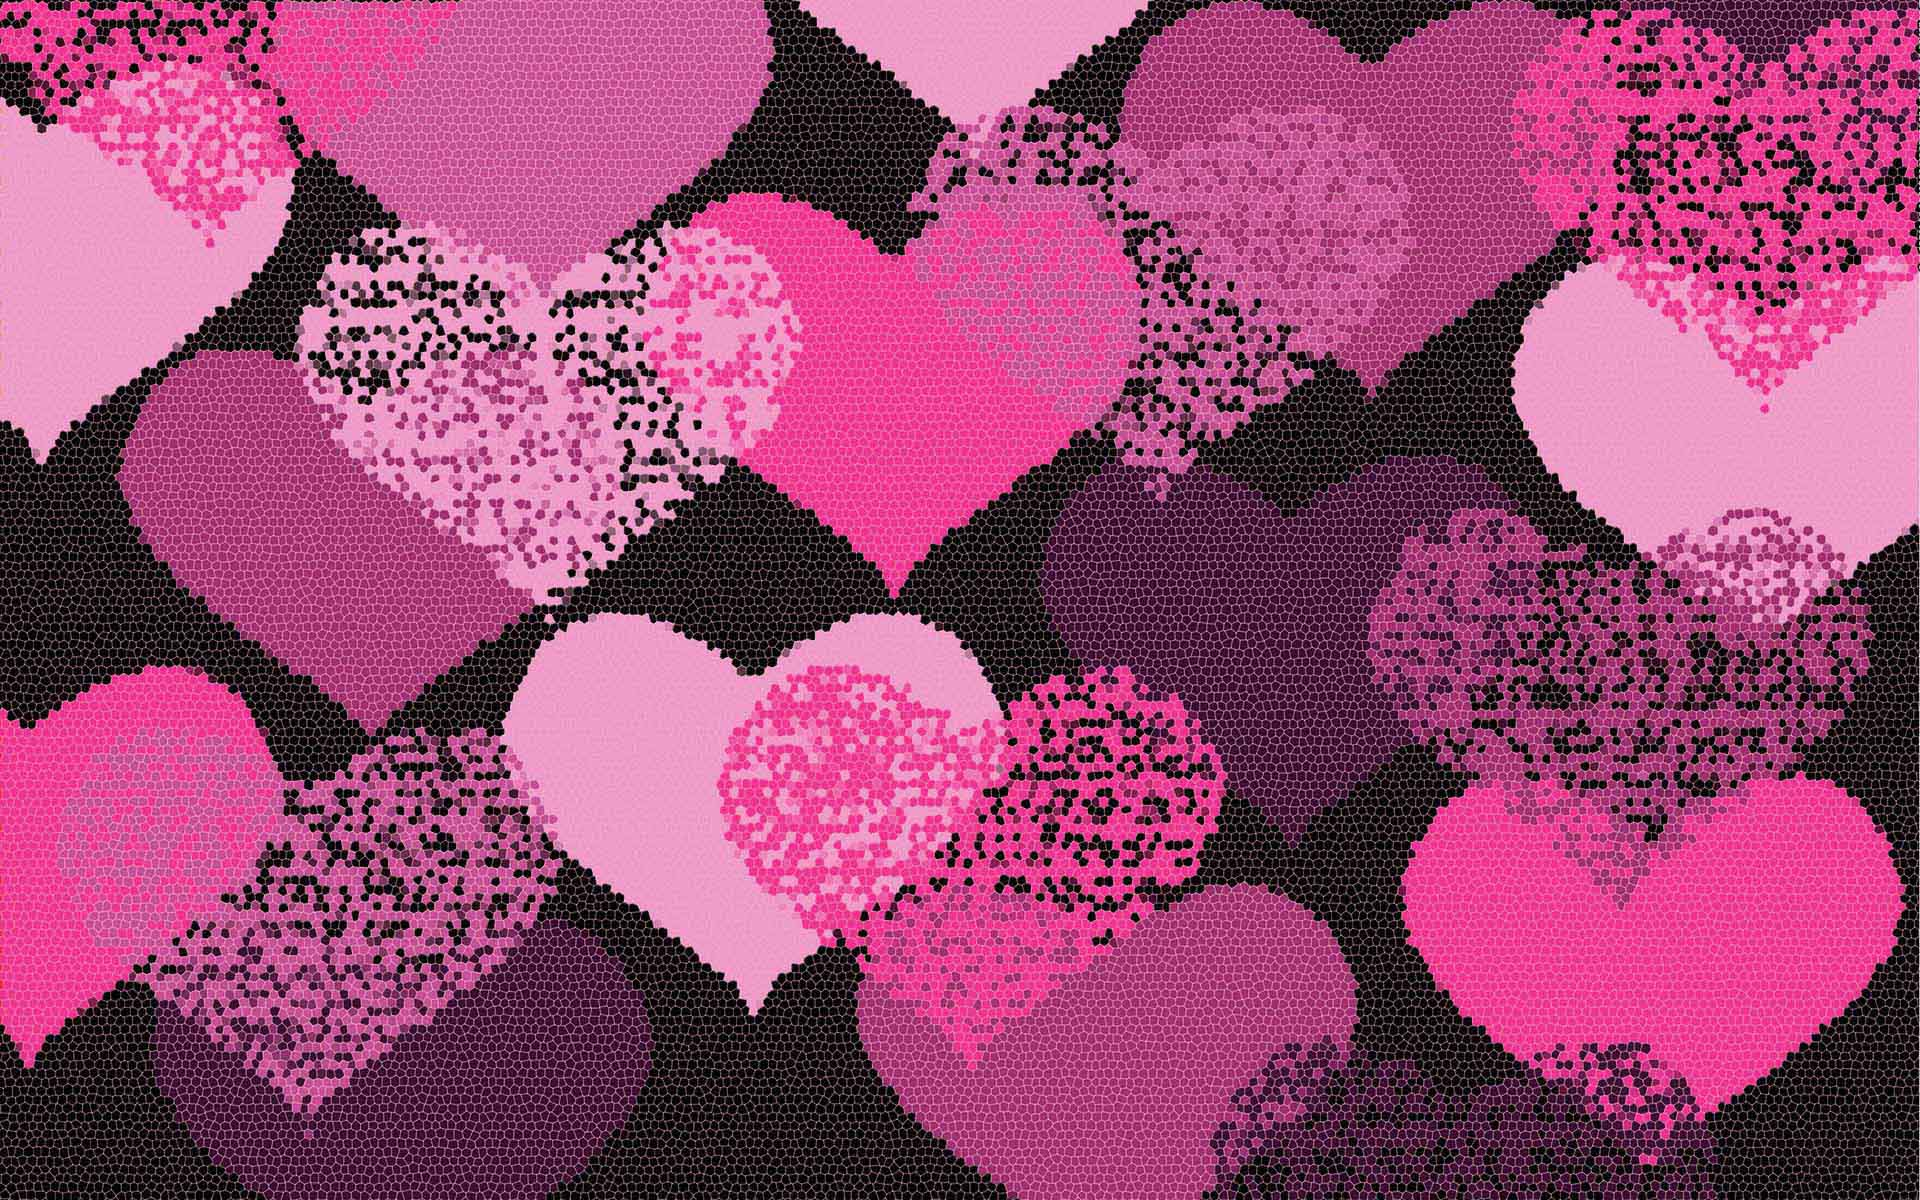 Love Heart Wallpaper Desktop : Pink Love Backgrounds - Wallpaper cave